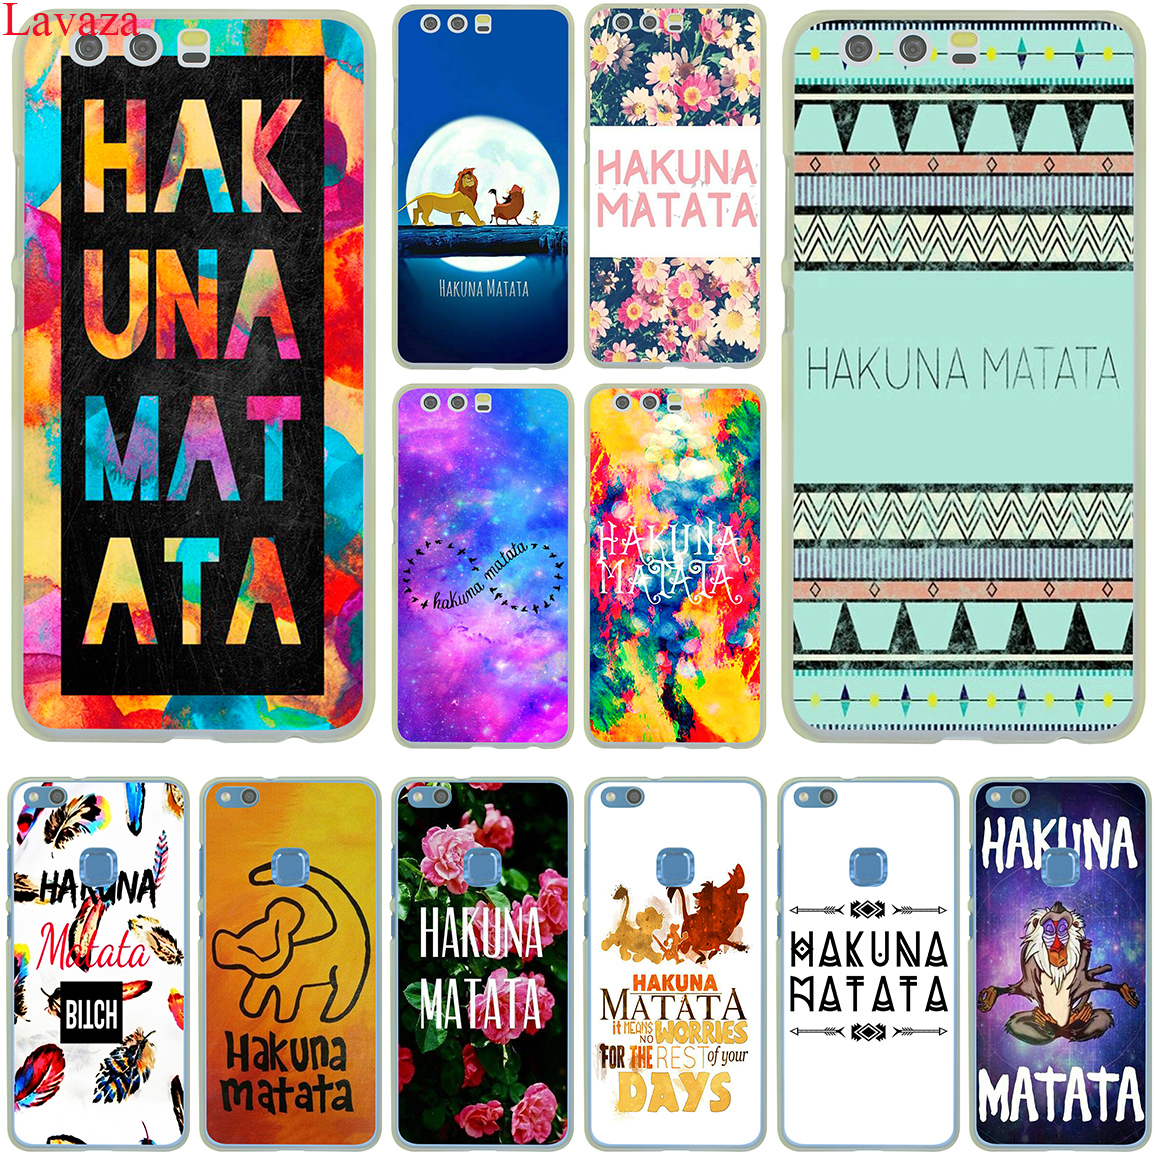 Lavaza <font><b>hakuna</b></font> <font><b>matata</b></font> The <font><b>Lion</b></font> <font><b>King</b></font> Case for Huawei P30 P20 P10 P9 Plus P8 Lite Mini 2017 2016 2015 P smart Z 2019 image